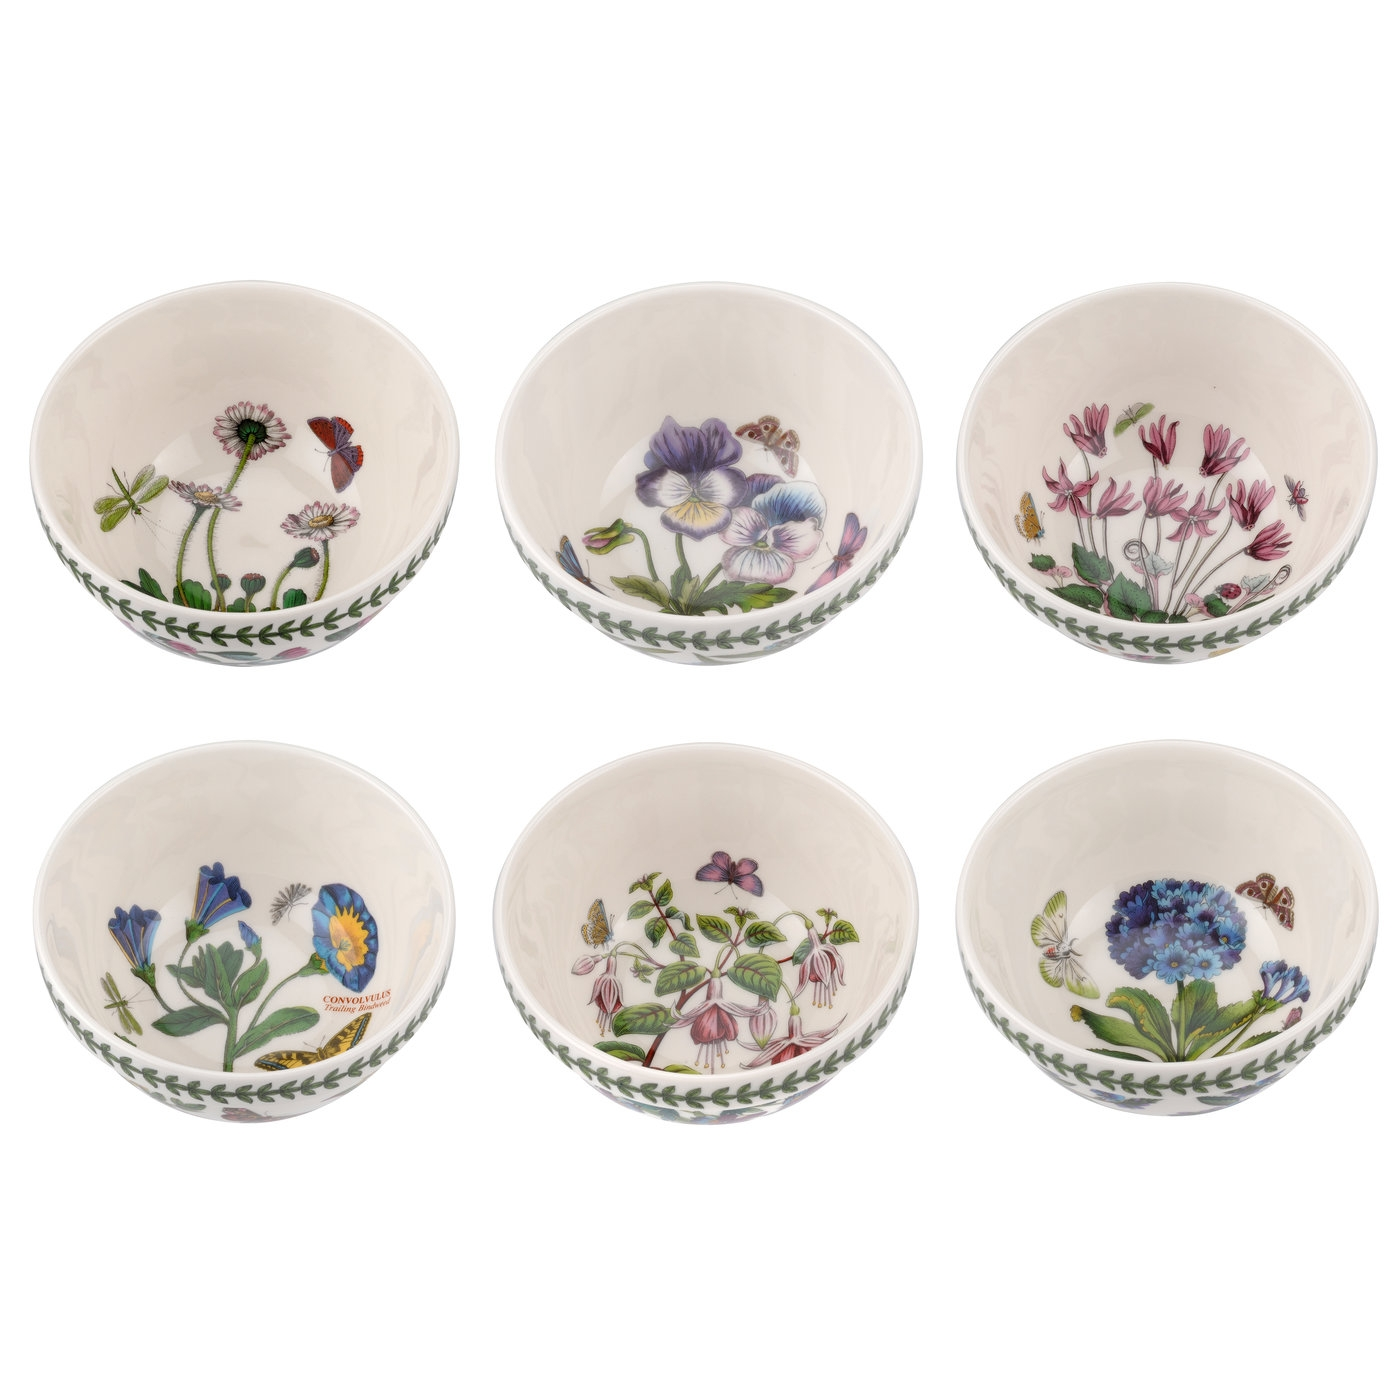 Botanic Garden 5.5 Inch Stacking Bowl Set of 6 (Assorted Motifs) image number 0